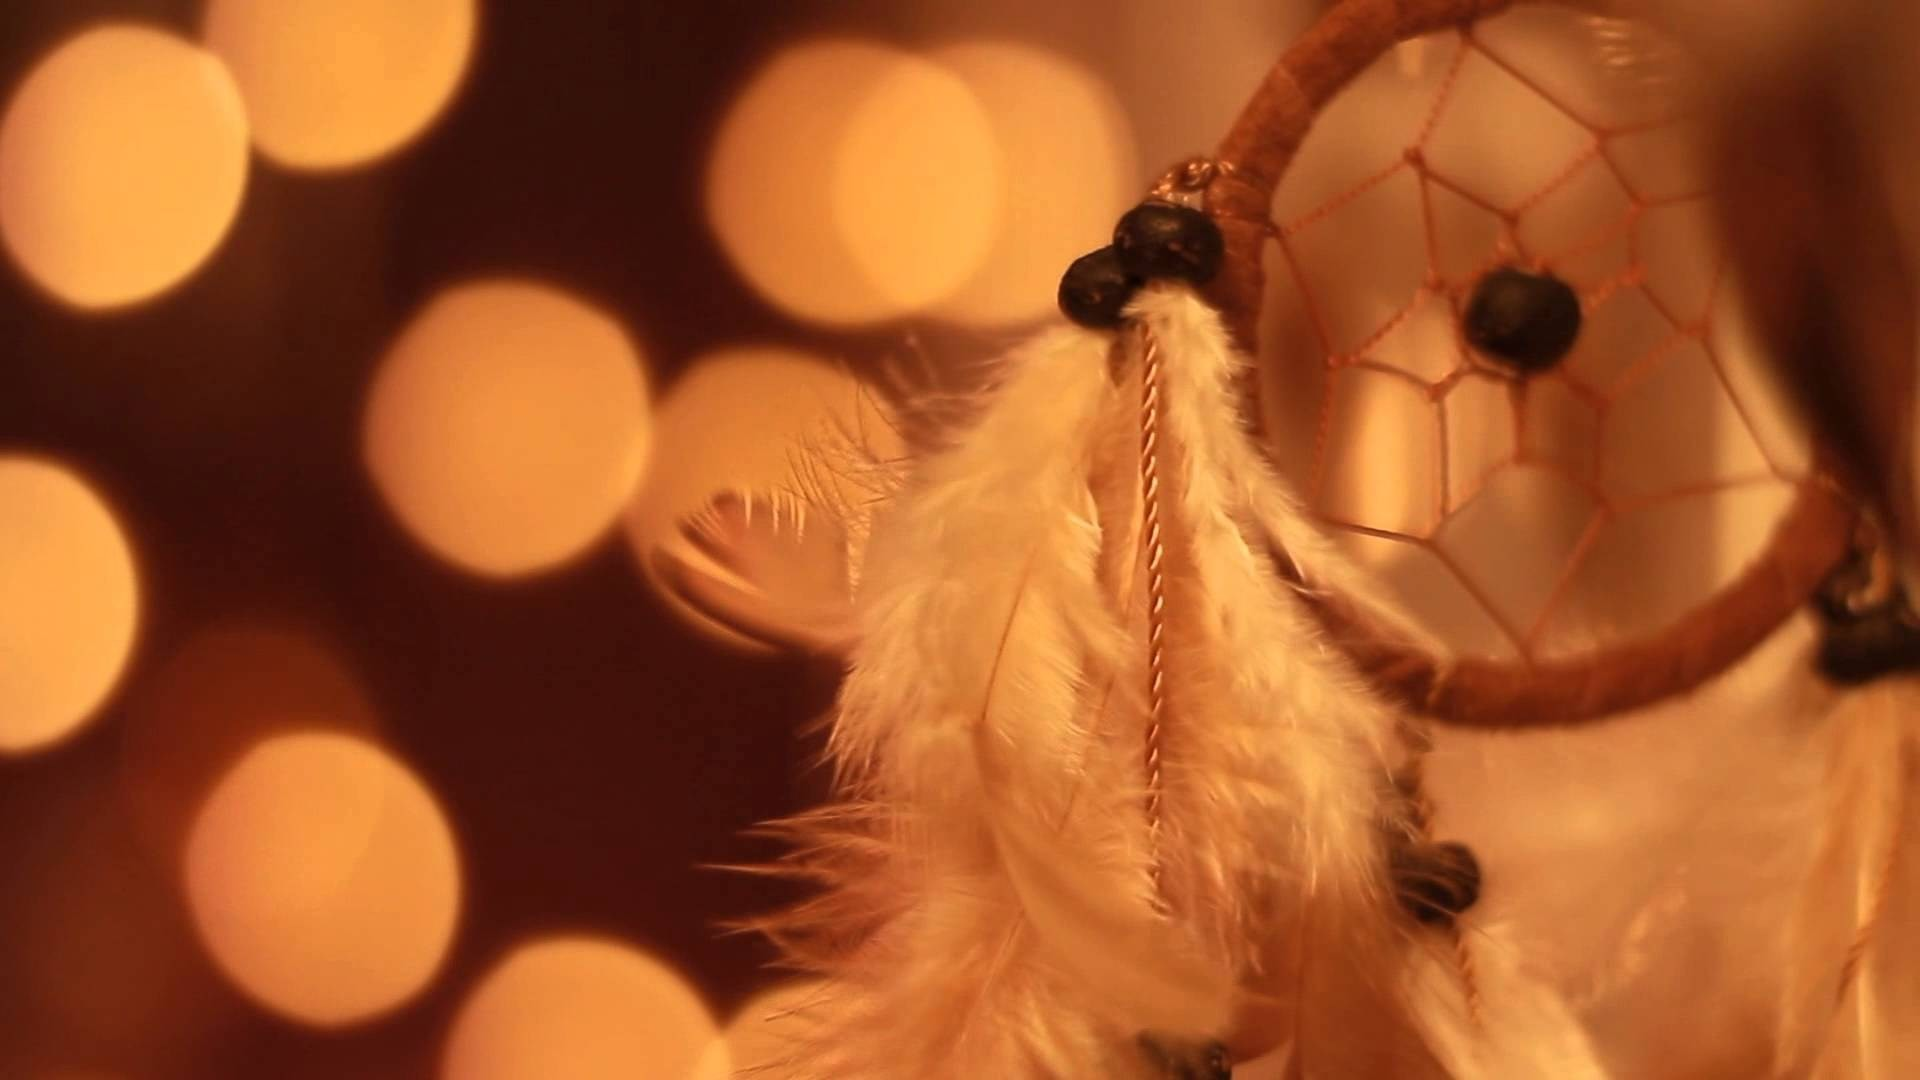 art images desktop dreamcatcher hd wallpapers